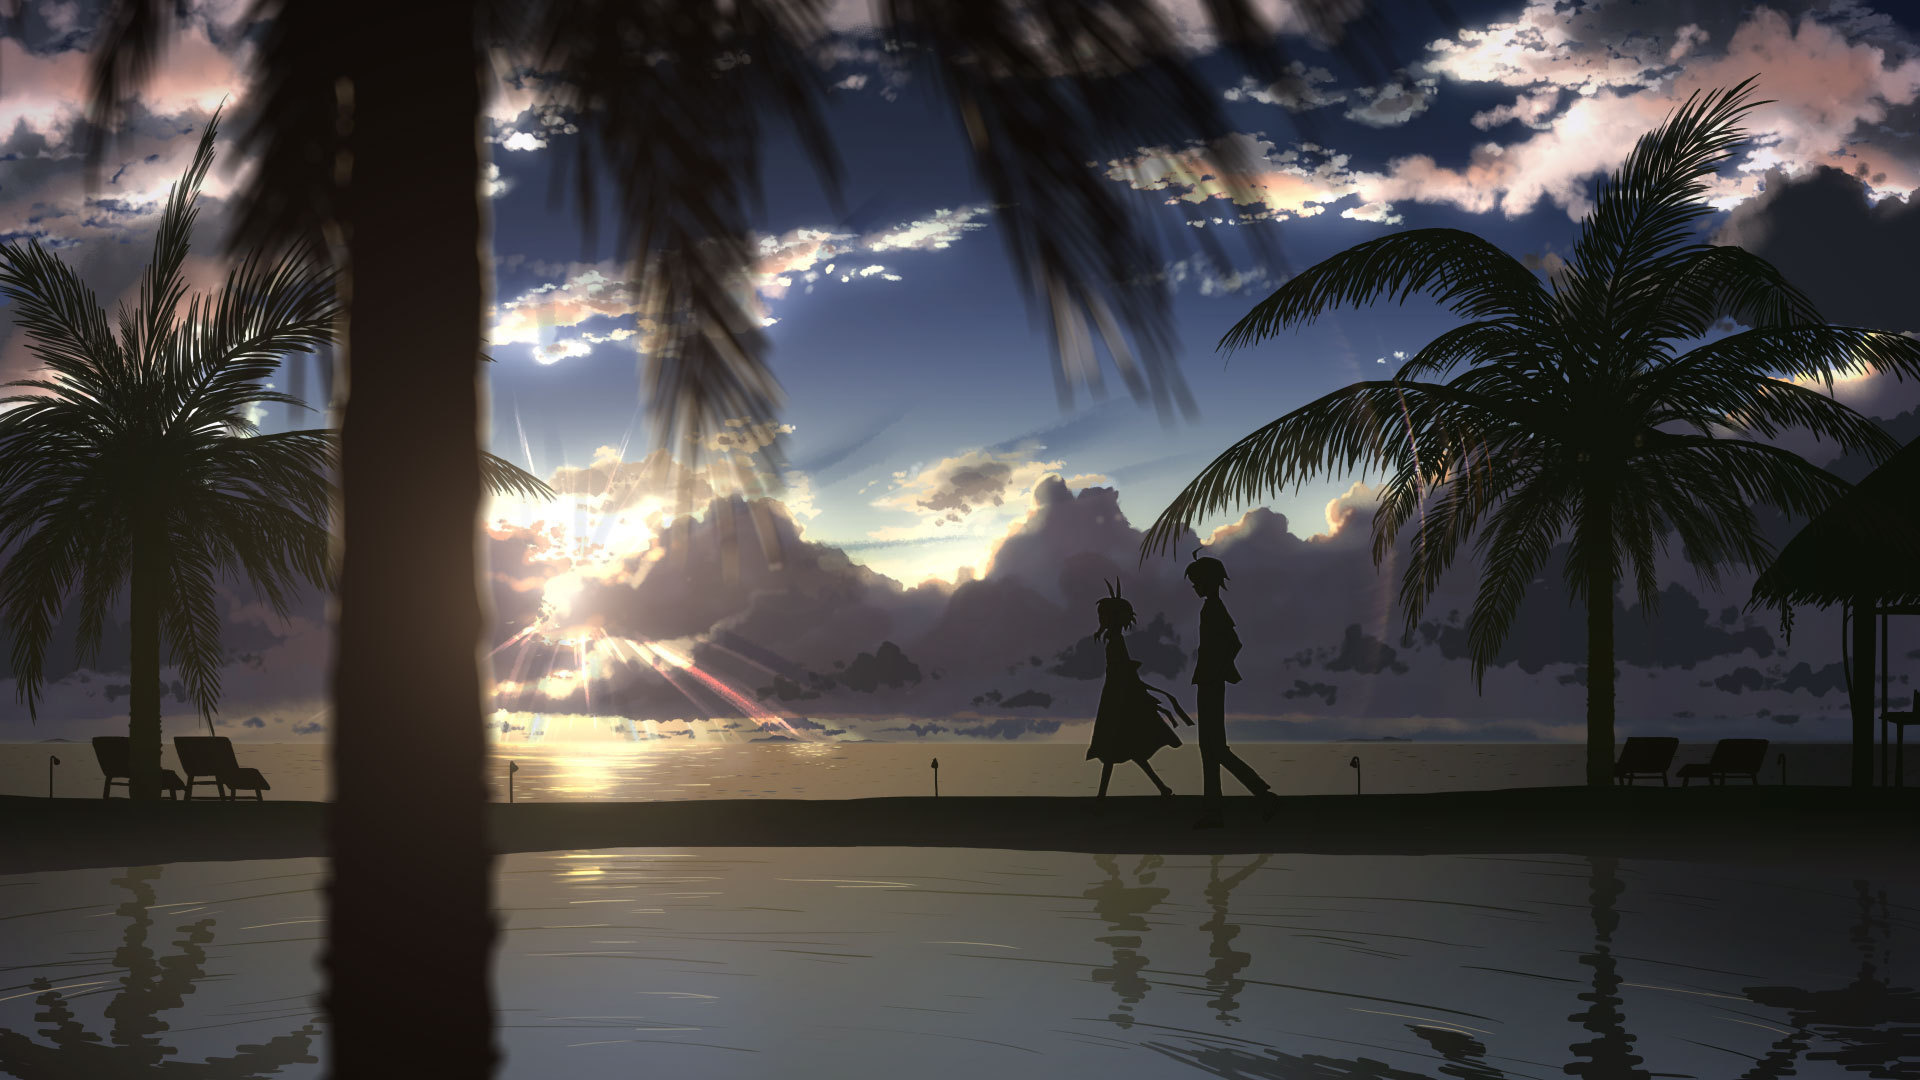 images of wallpaper anime landscape palm trees sunset beach clouds